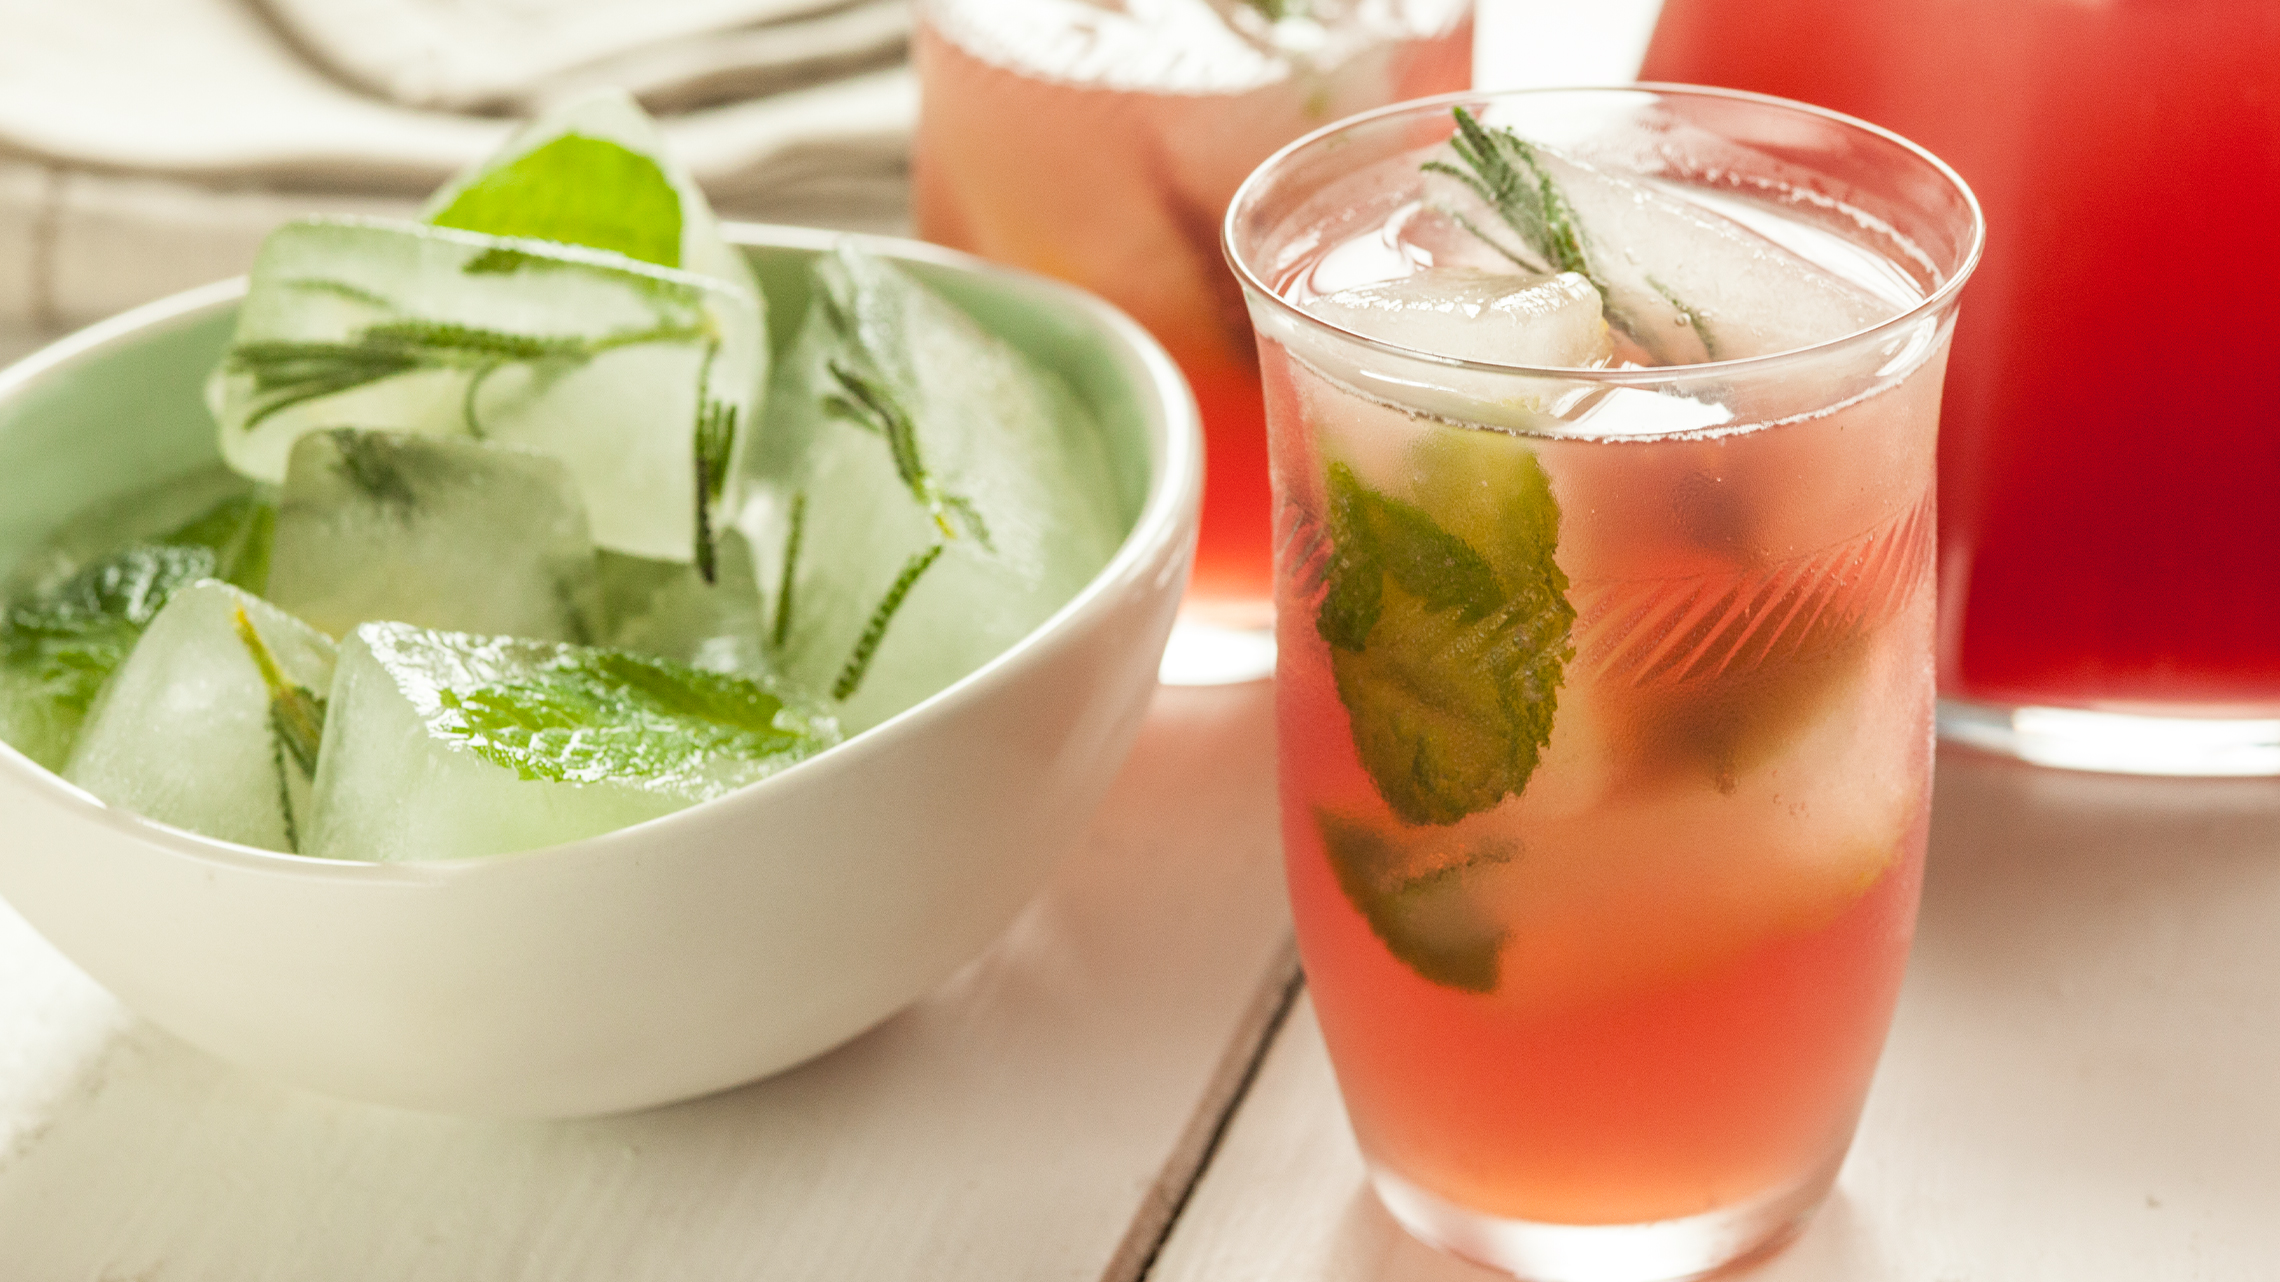 8 Refreshing Summer Drinks to Keep You Cool